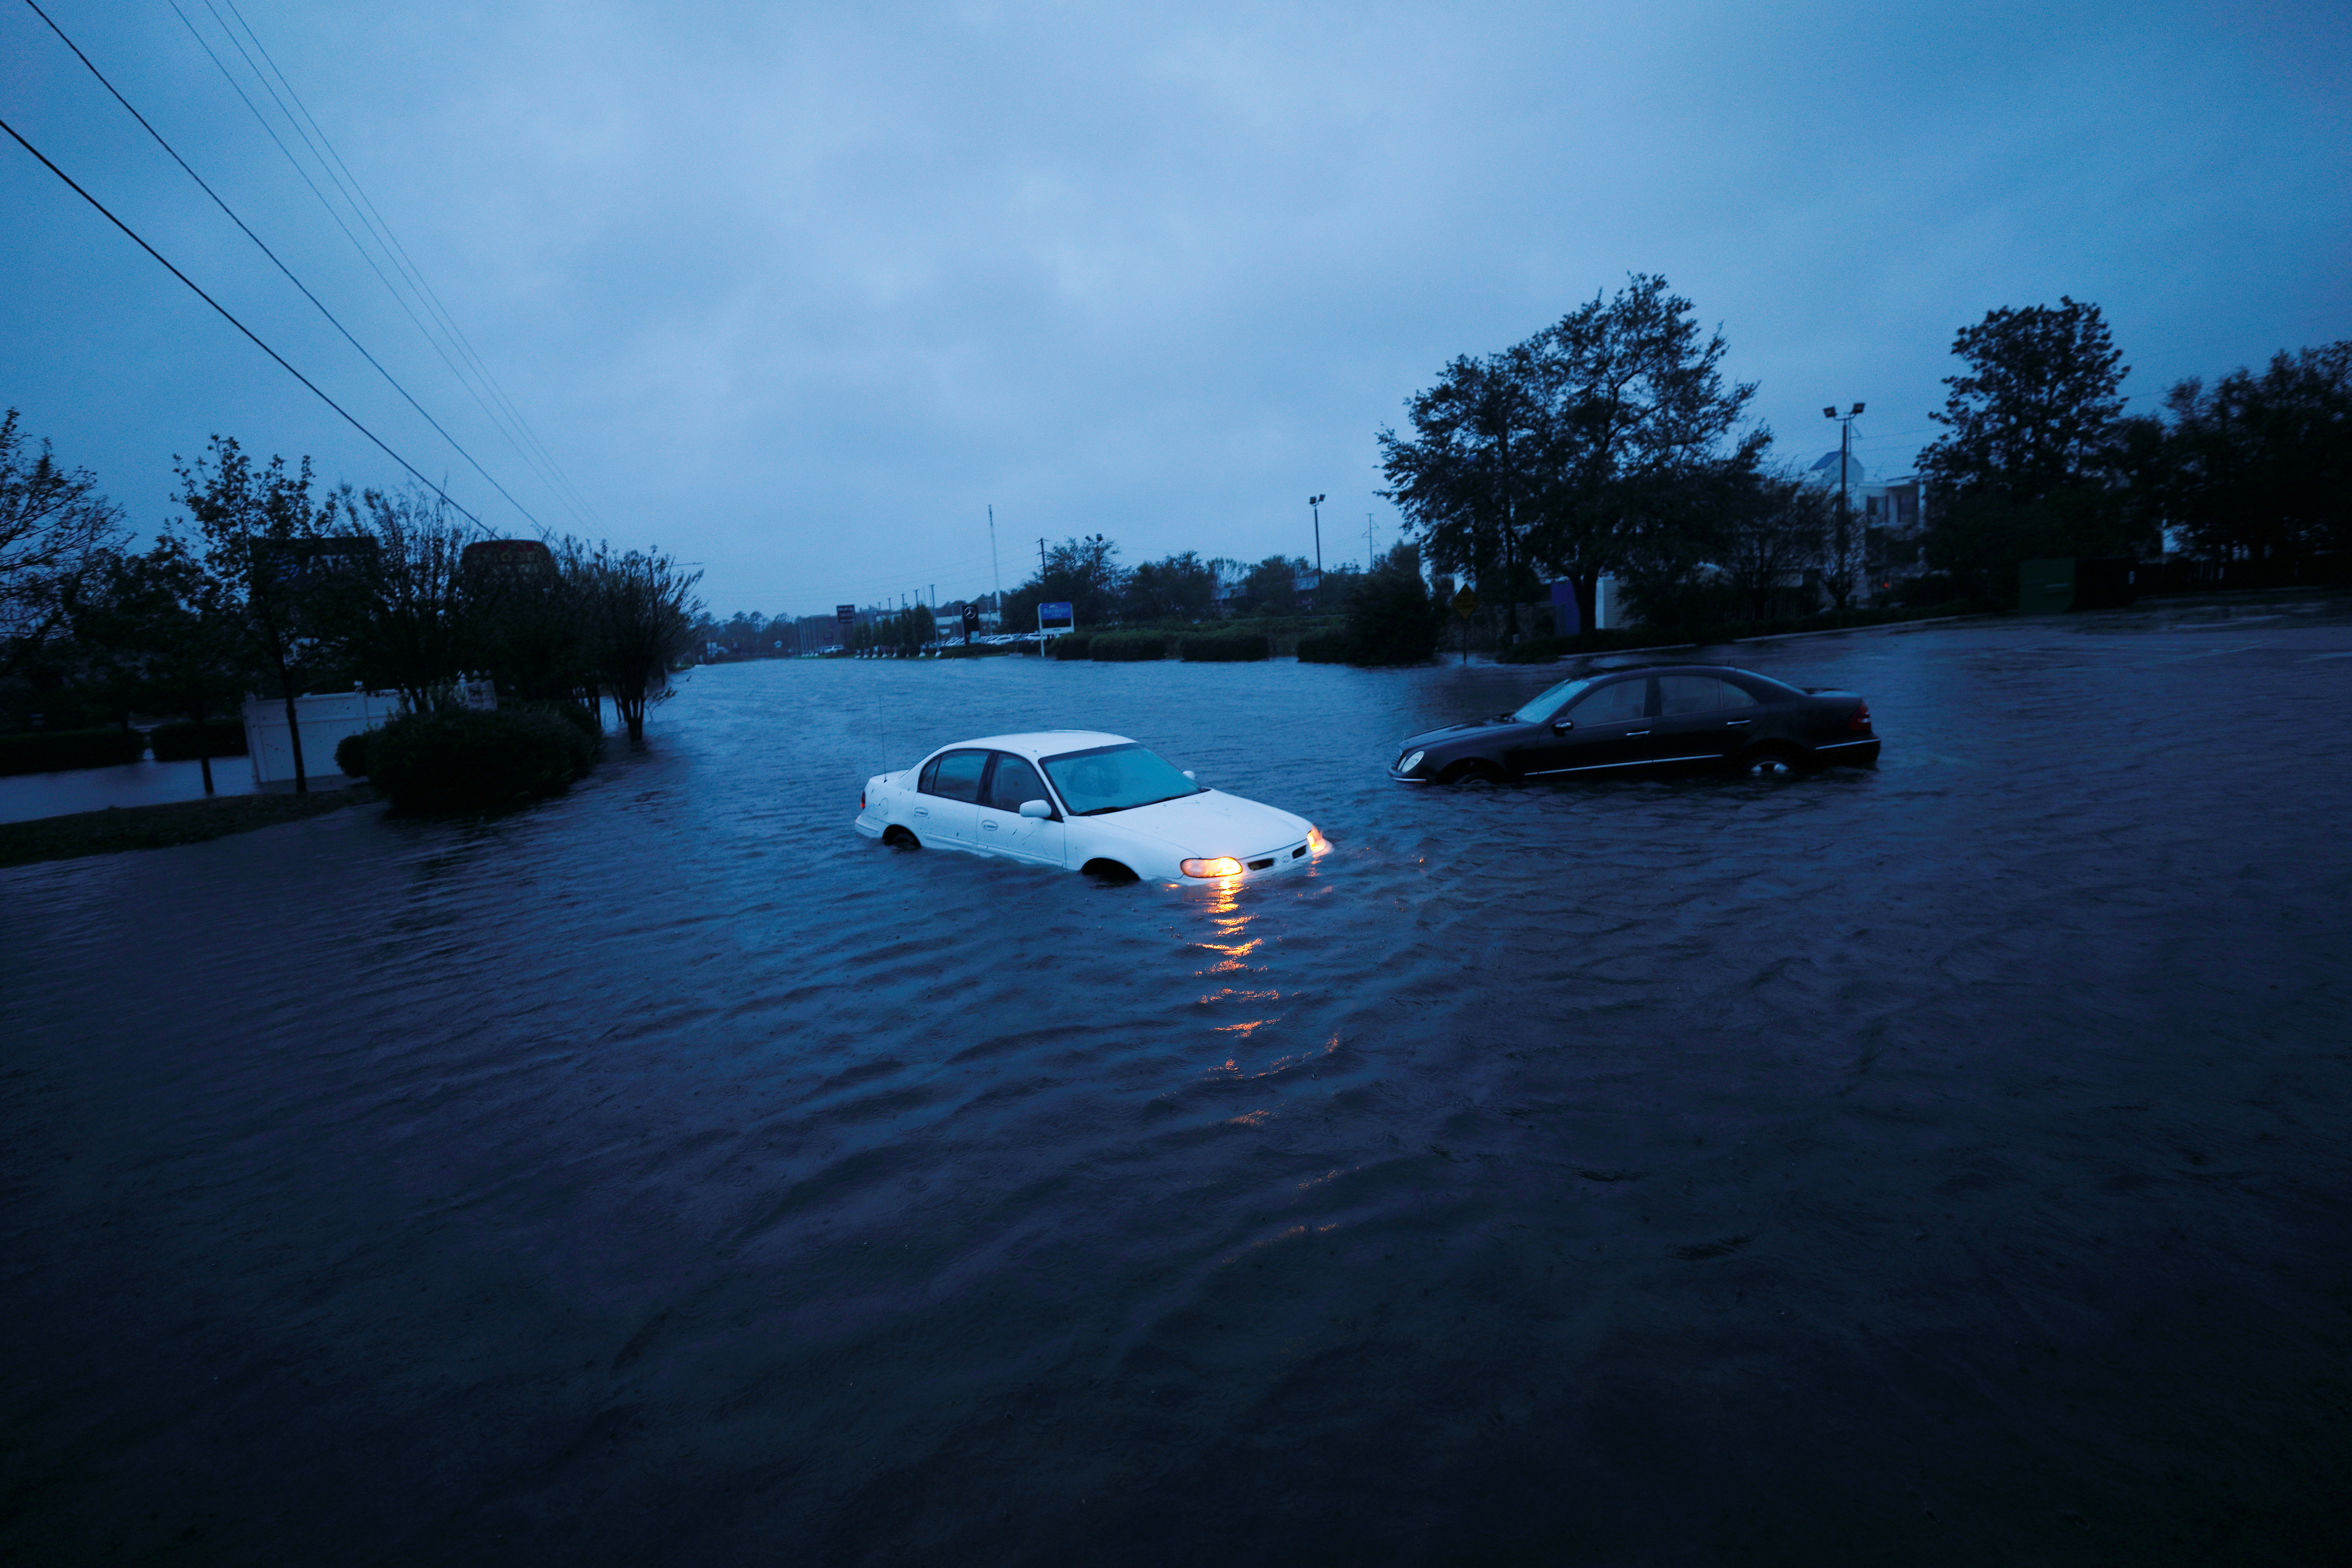 An abandoned car sits flooded on a submerged road at dusk.